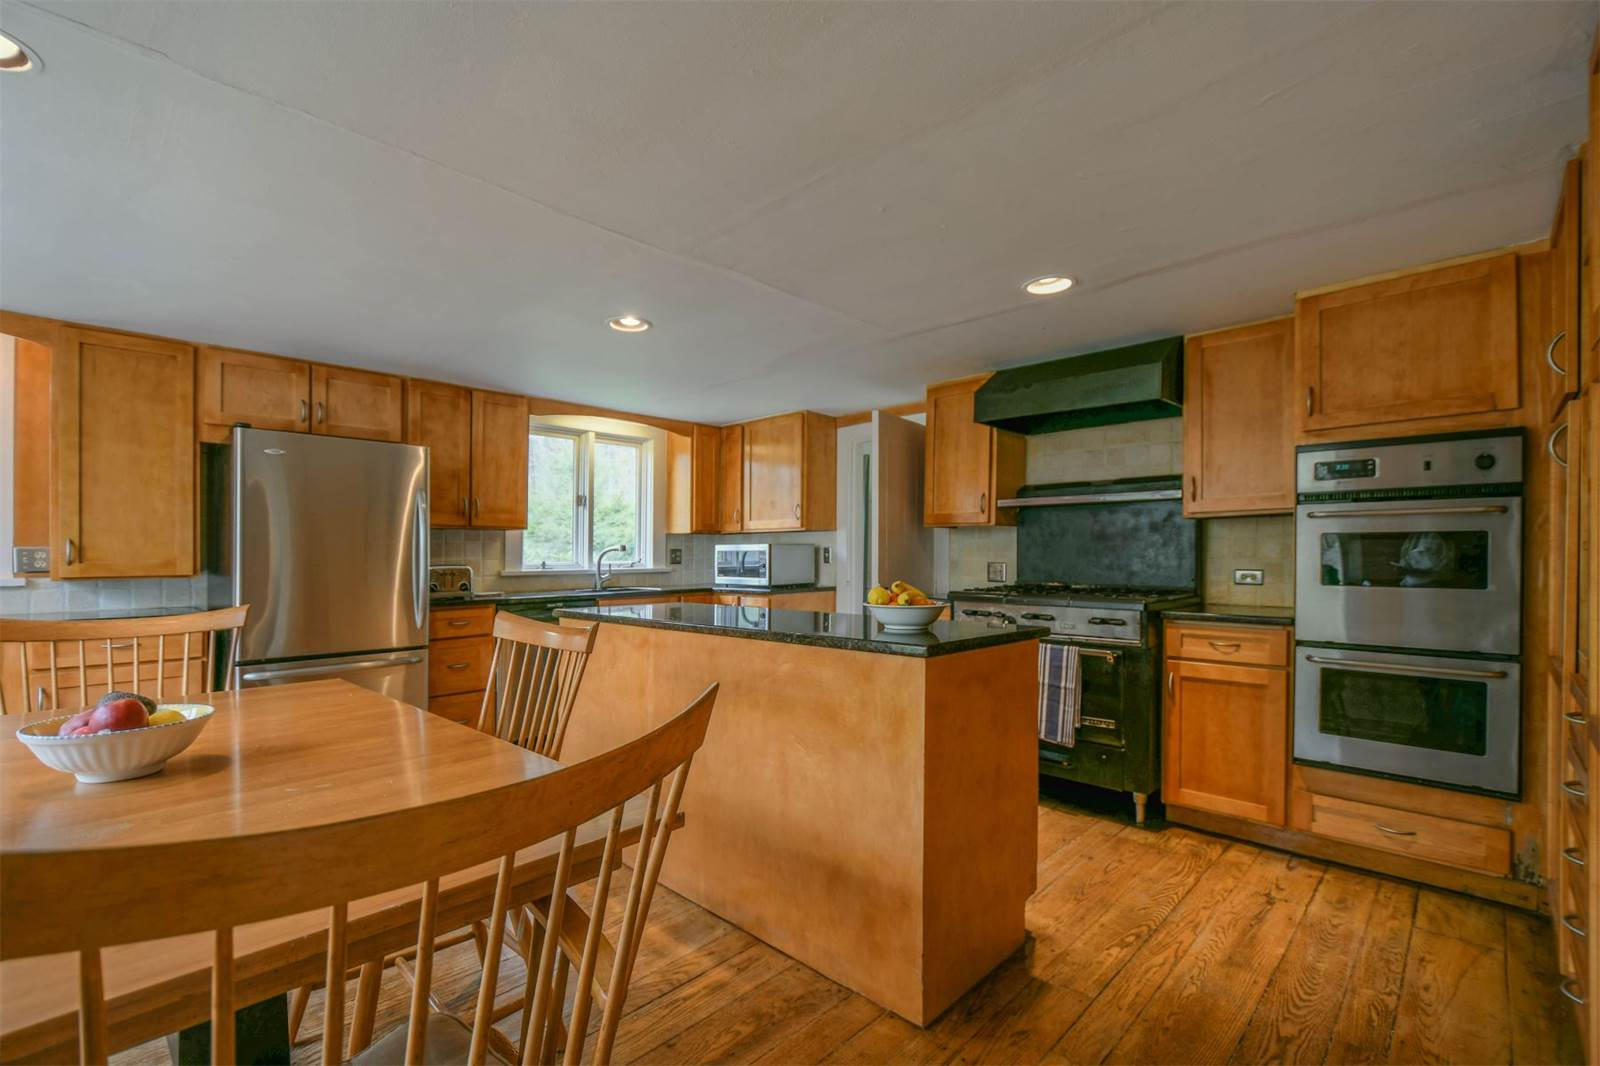 Charming 1793 Farmhouse In Connecticut Asks 498k Curbed